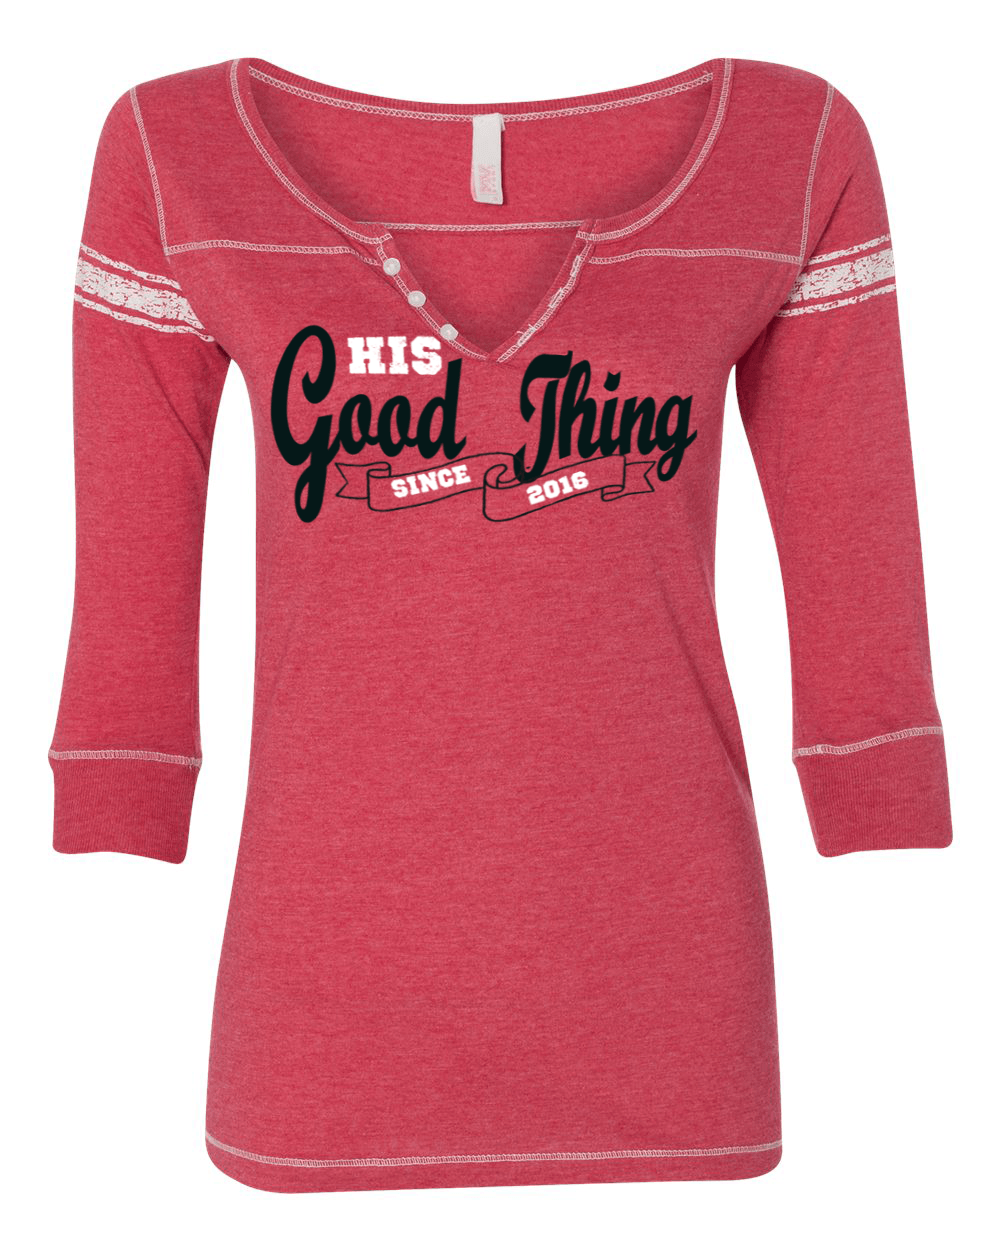 His Good Thing Since....Custom Ladies 3/4 Sleeve Henley Slim Fit - S / Red - Christian T-Shirt | Christian Gifts | Christian Apparel - 4